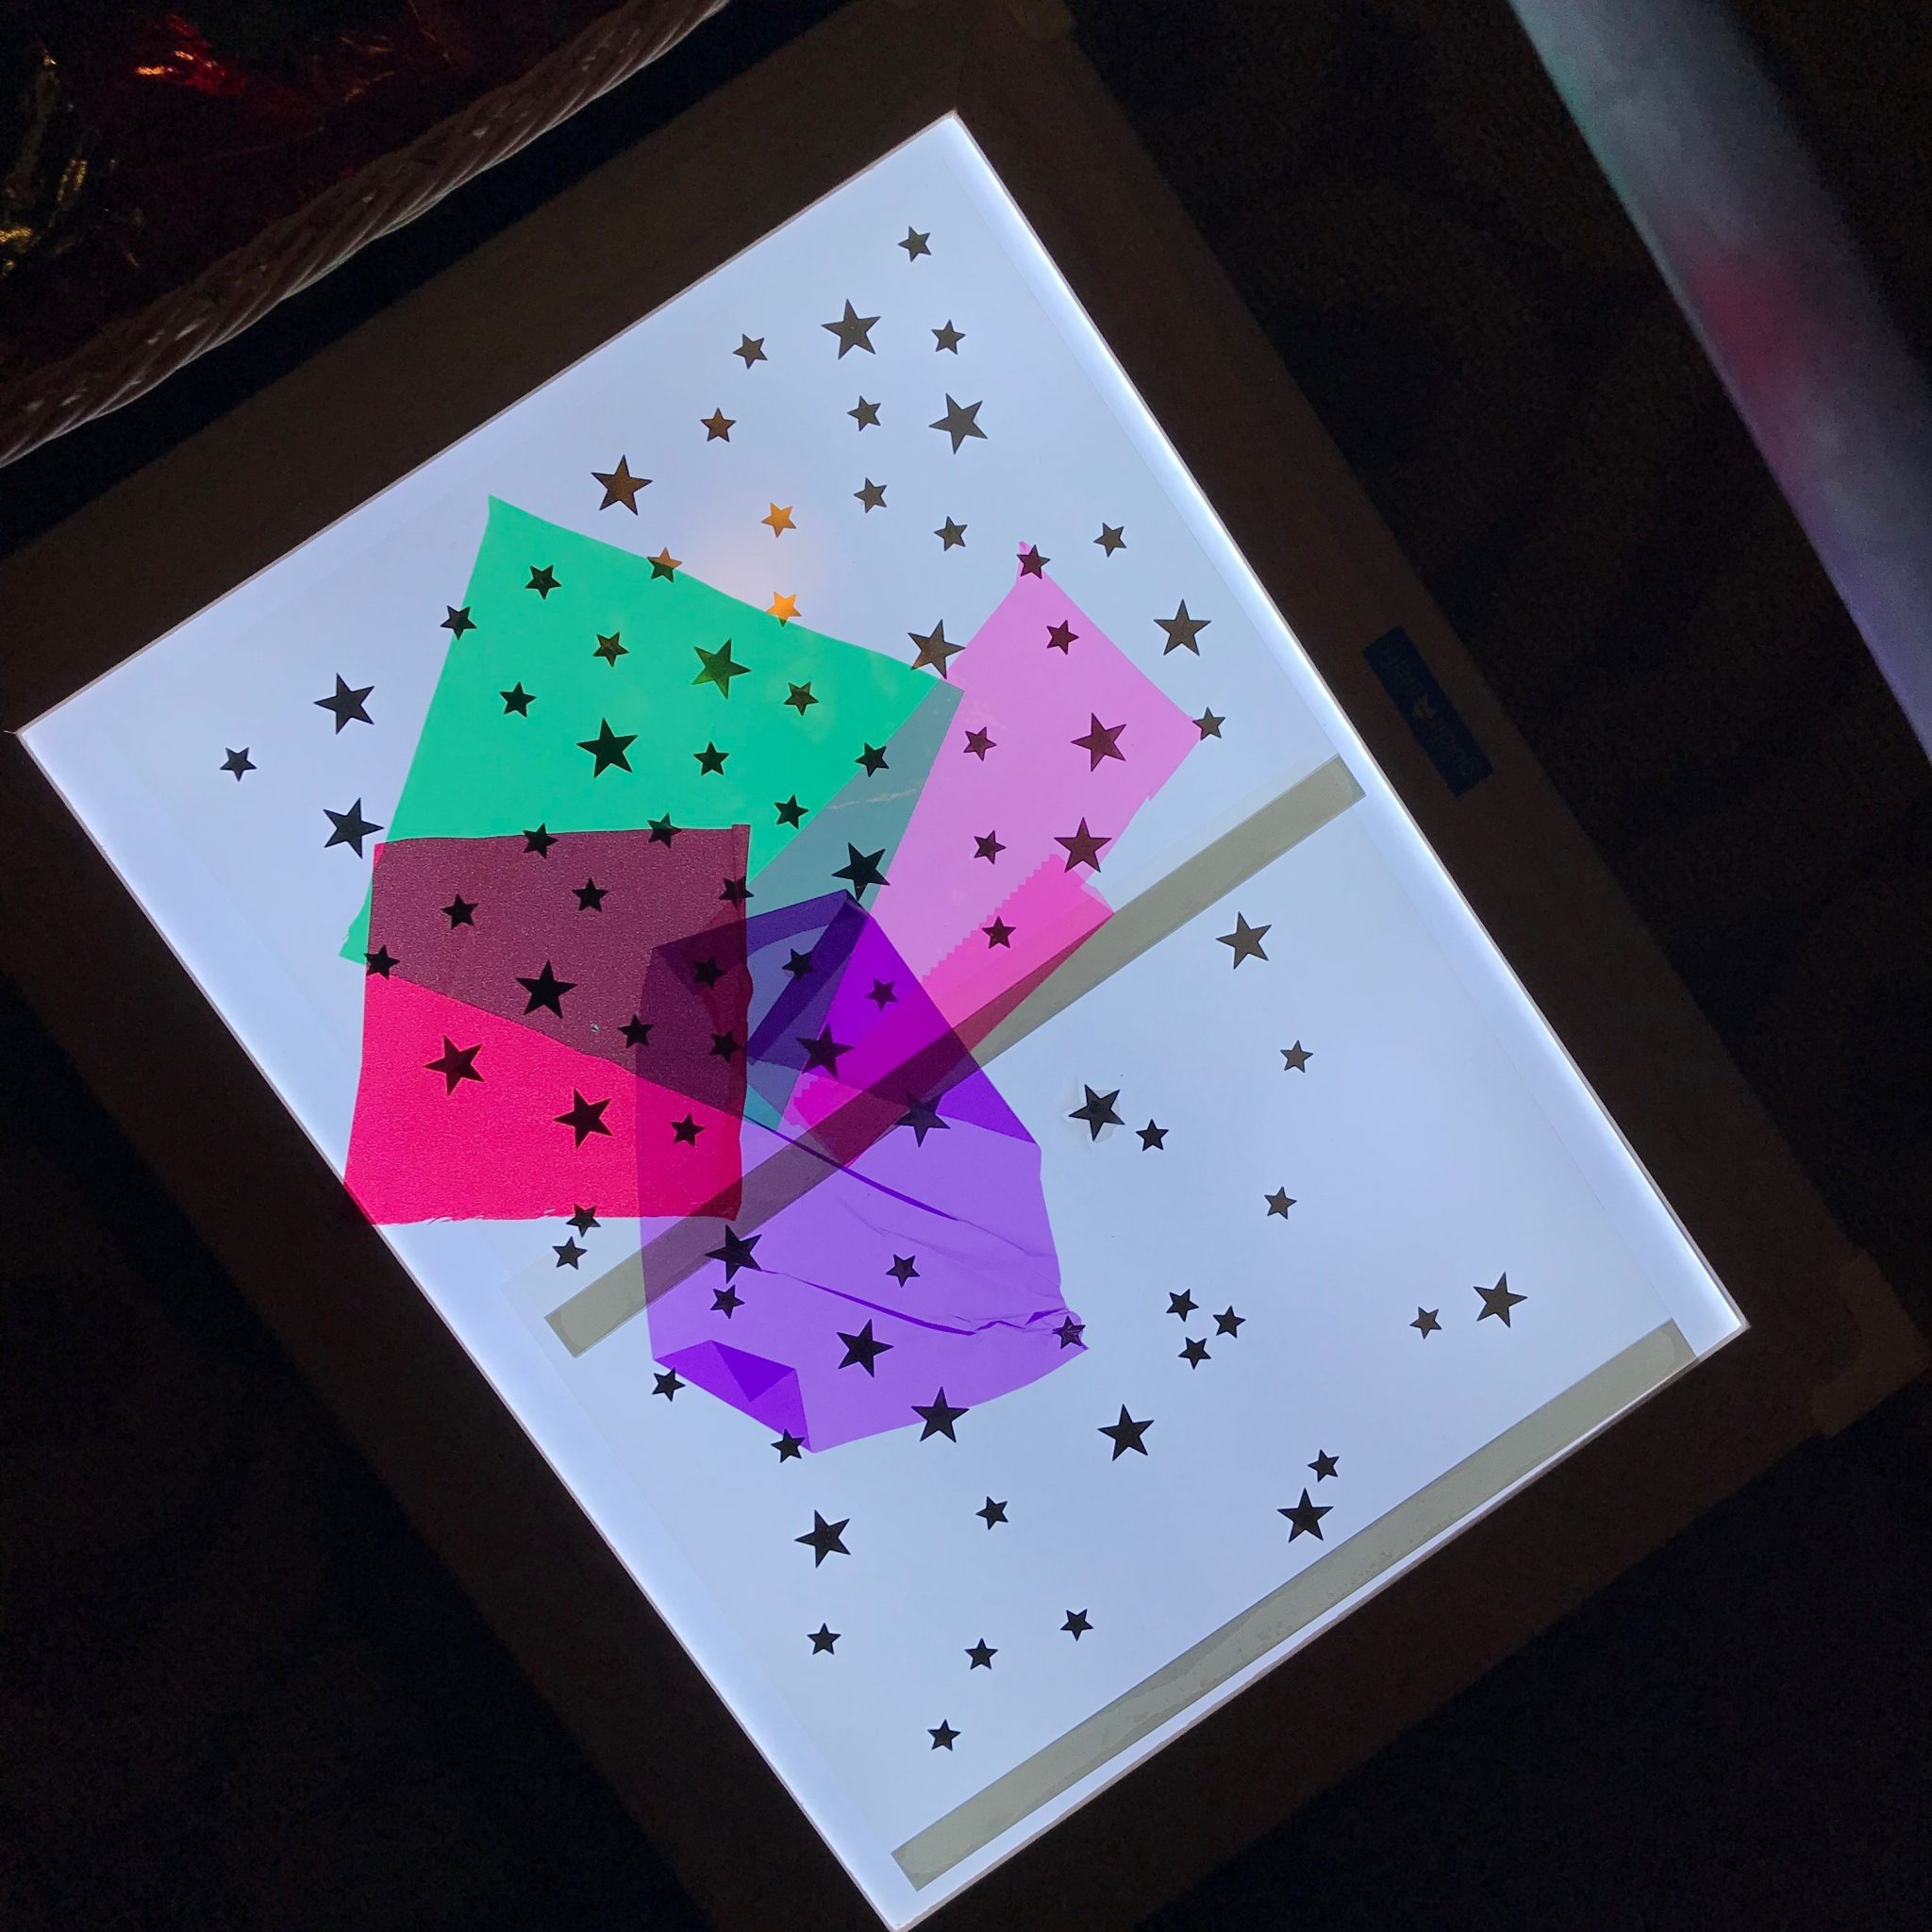 lightboard with stars and colors